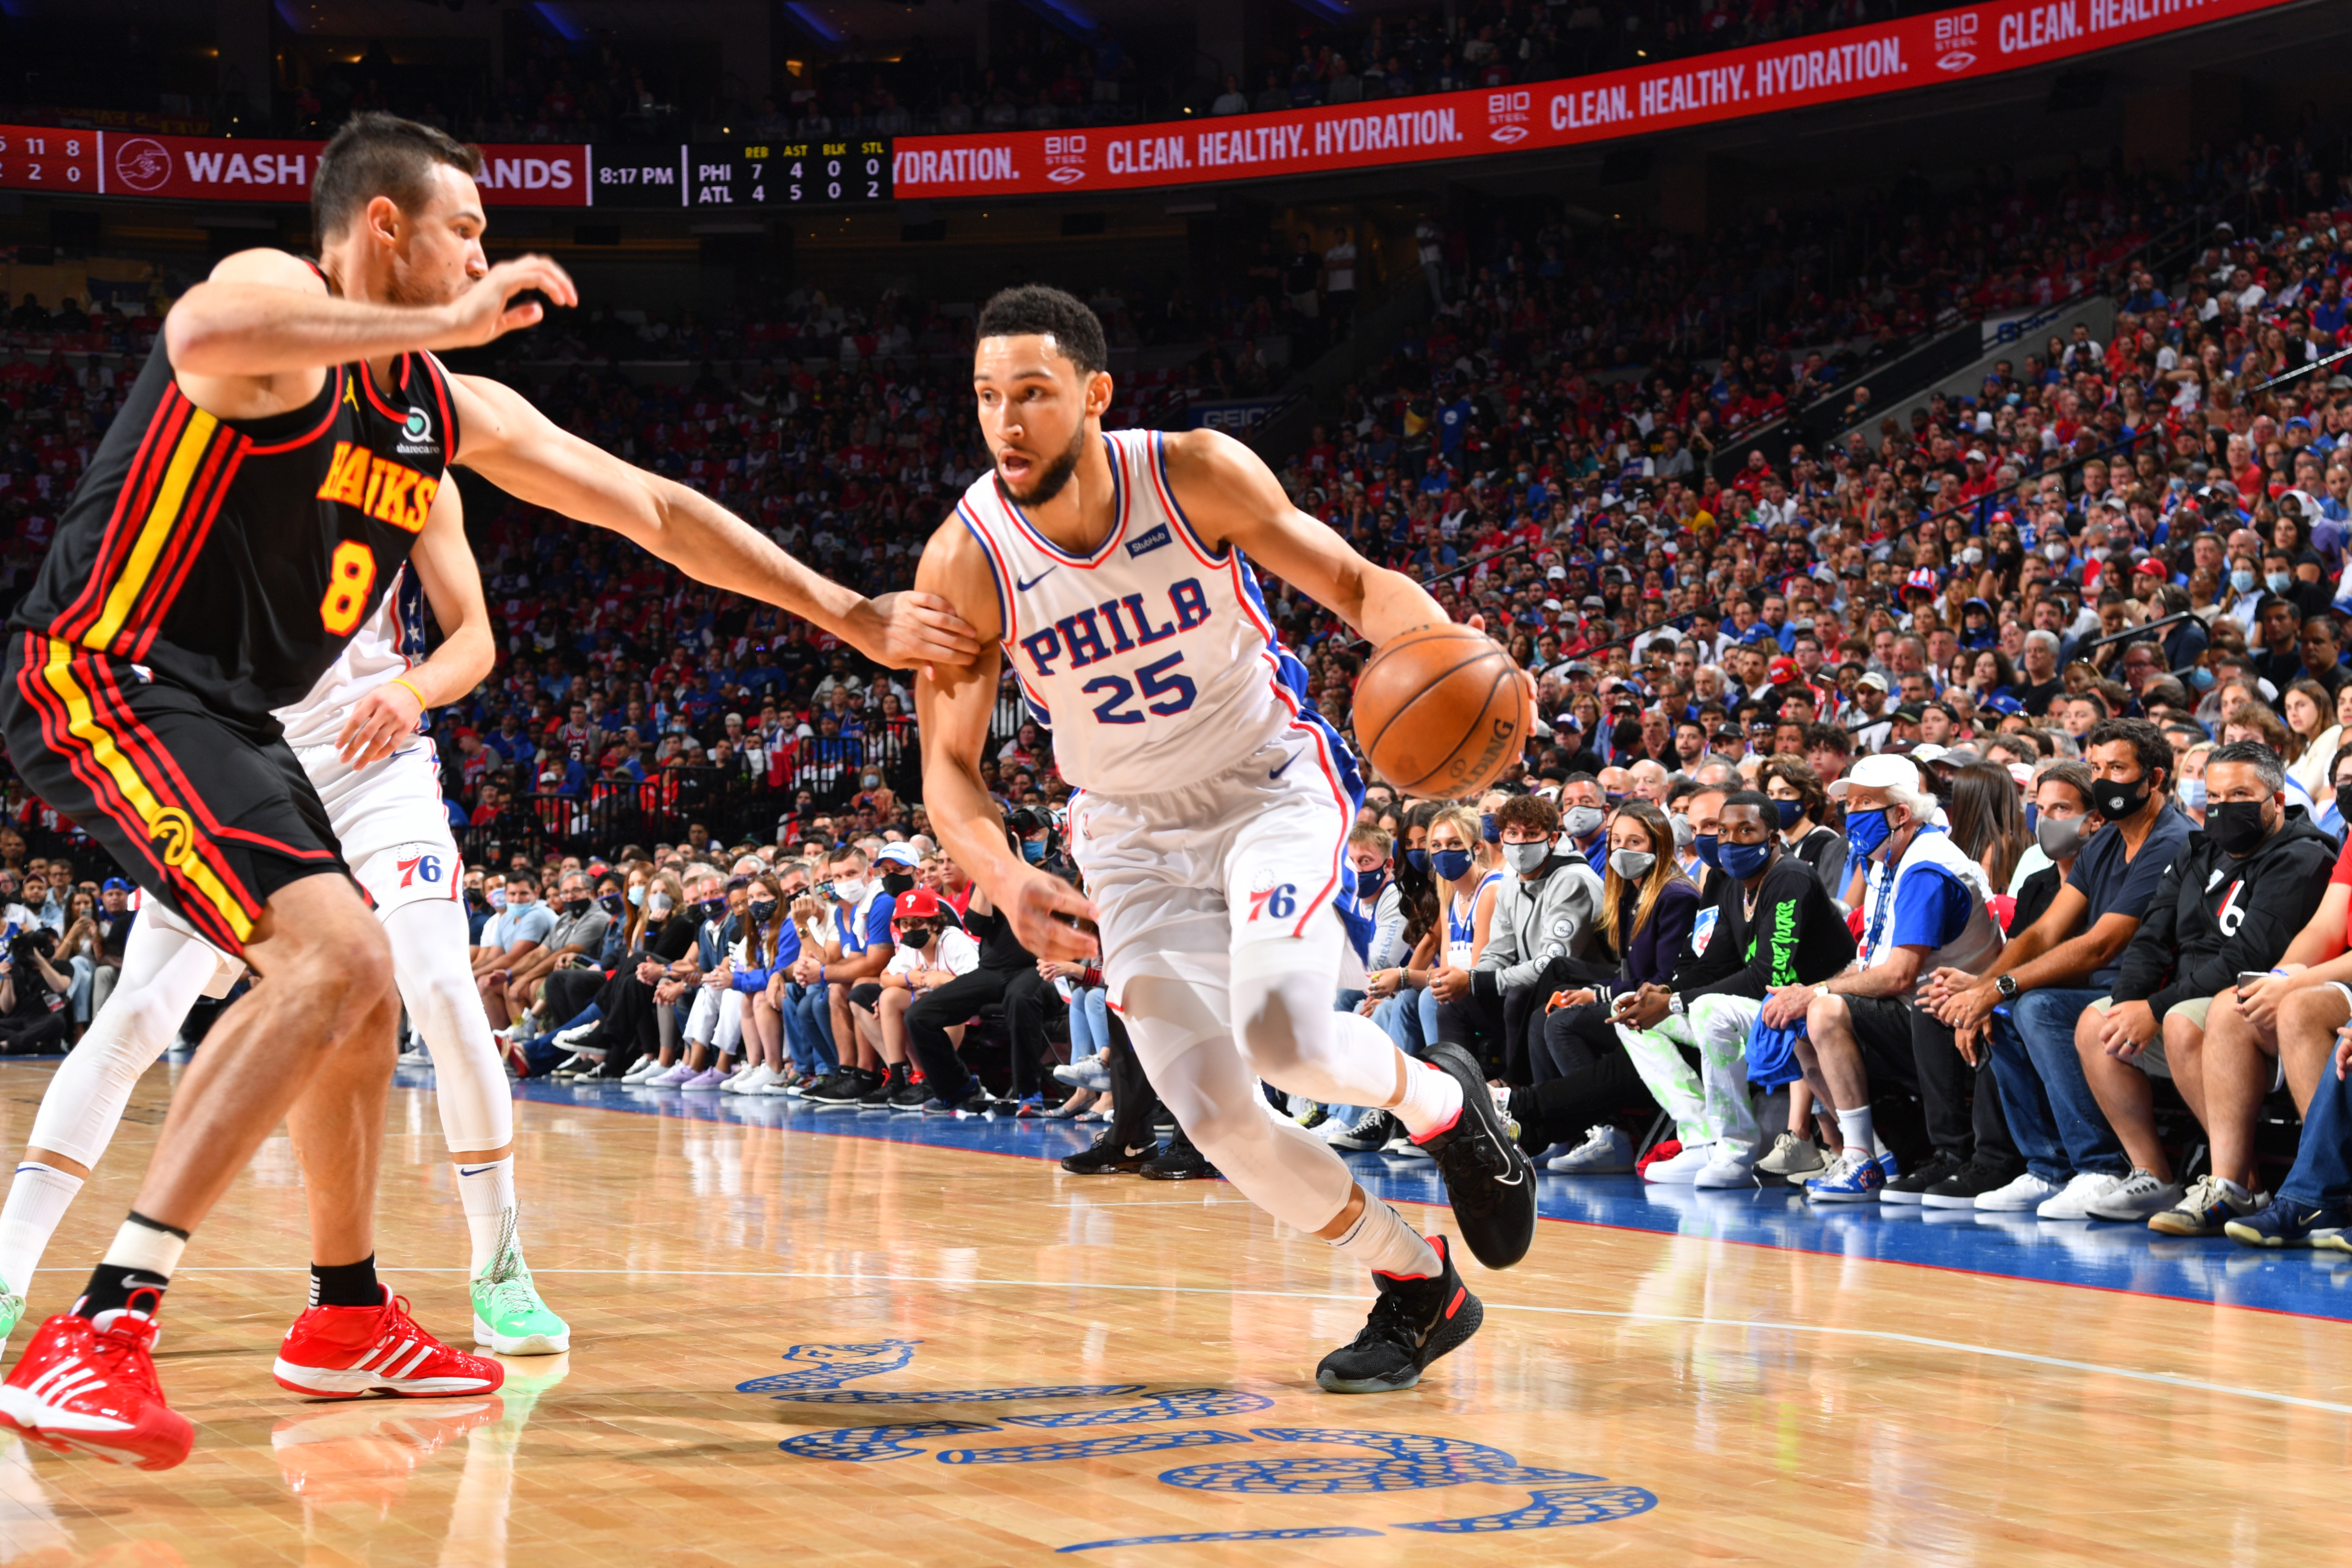 Ben Simmons #25 of the Philadelphia 76ers handles the ball against the Atlanta Hawks during Round 2, Game 7 of the Eastern Conference Playoffs on June 20, 2021 at Wells Fargo Center in Philadelphia, Pennsylvania.